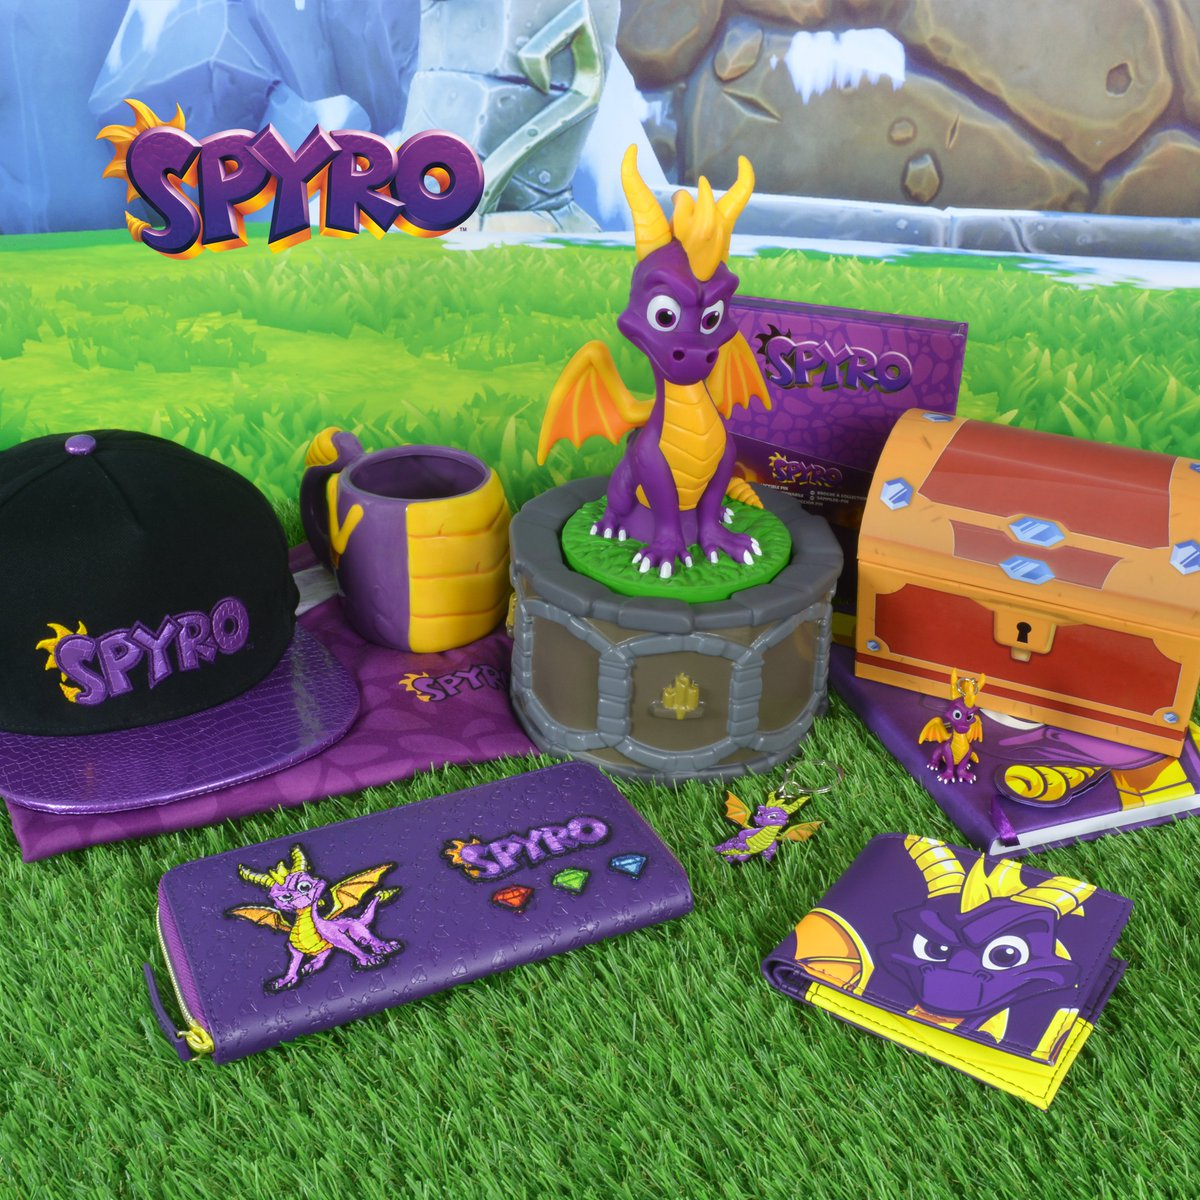 Our official #SpyrotheDragon merchandise range is NOW AVAILABLE TO PREORDER WORLDWIDE!  Shirts, mugs, wallets, purses, pin badges, snapbacks, and even an incense burner!   This is the ultimate #SpyroMerch collection - preorder yours while stocks last now:  https:// bit.ly/2MHWJTc  &nbsp;  <br>http://pic.twitter.com/HqK6fIFfW8